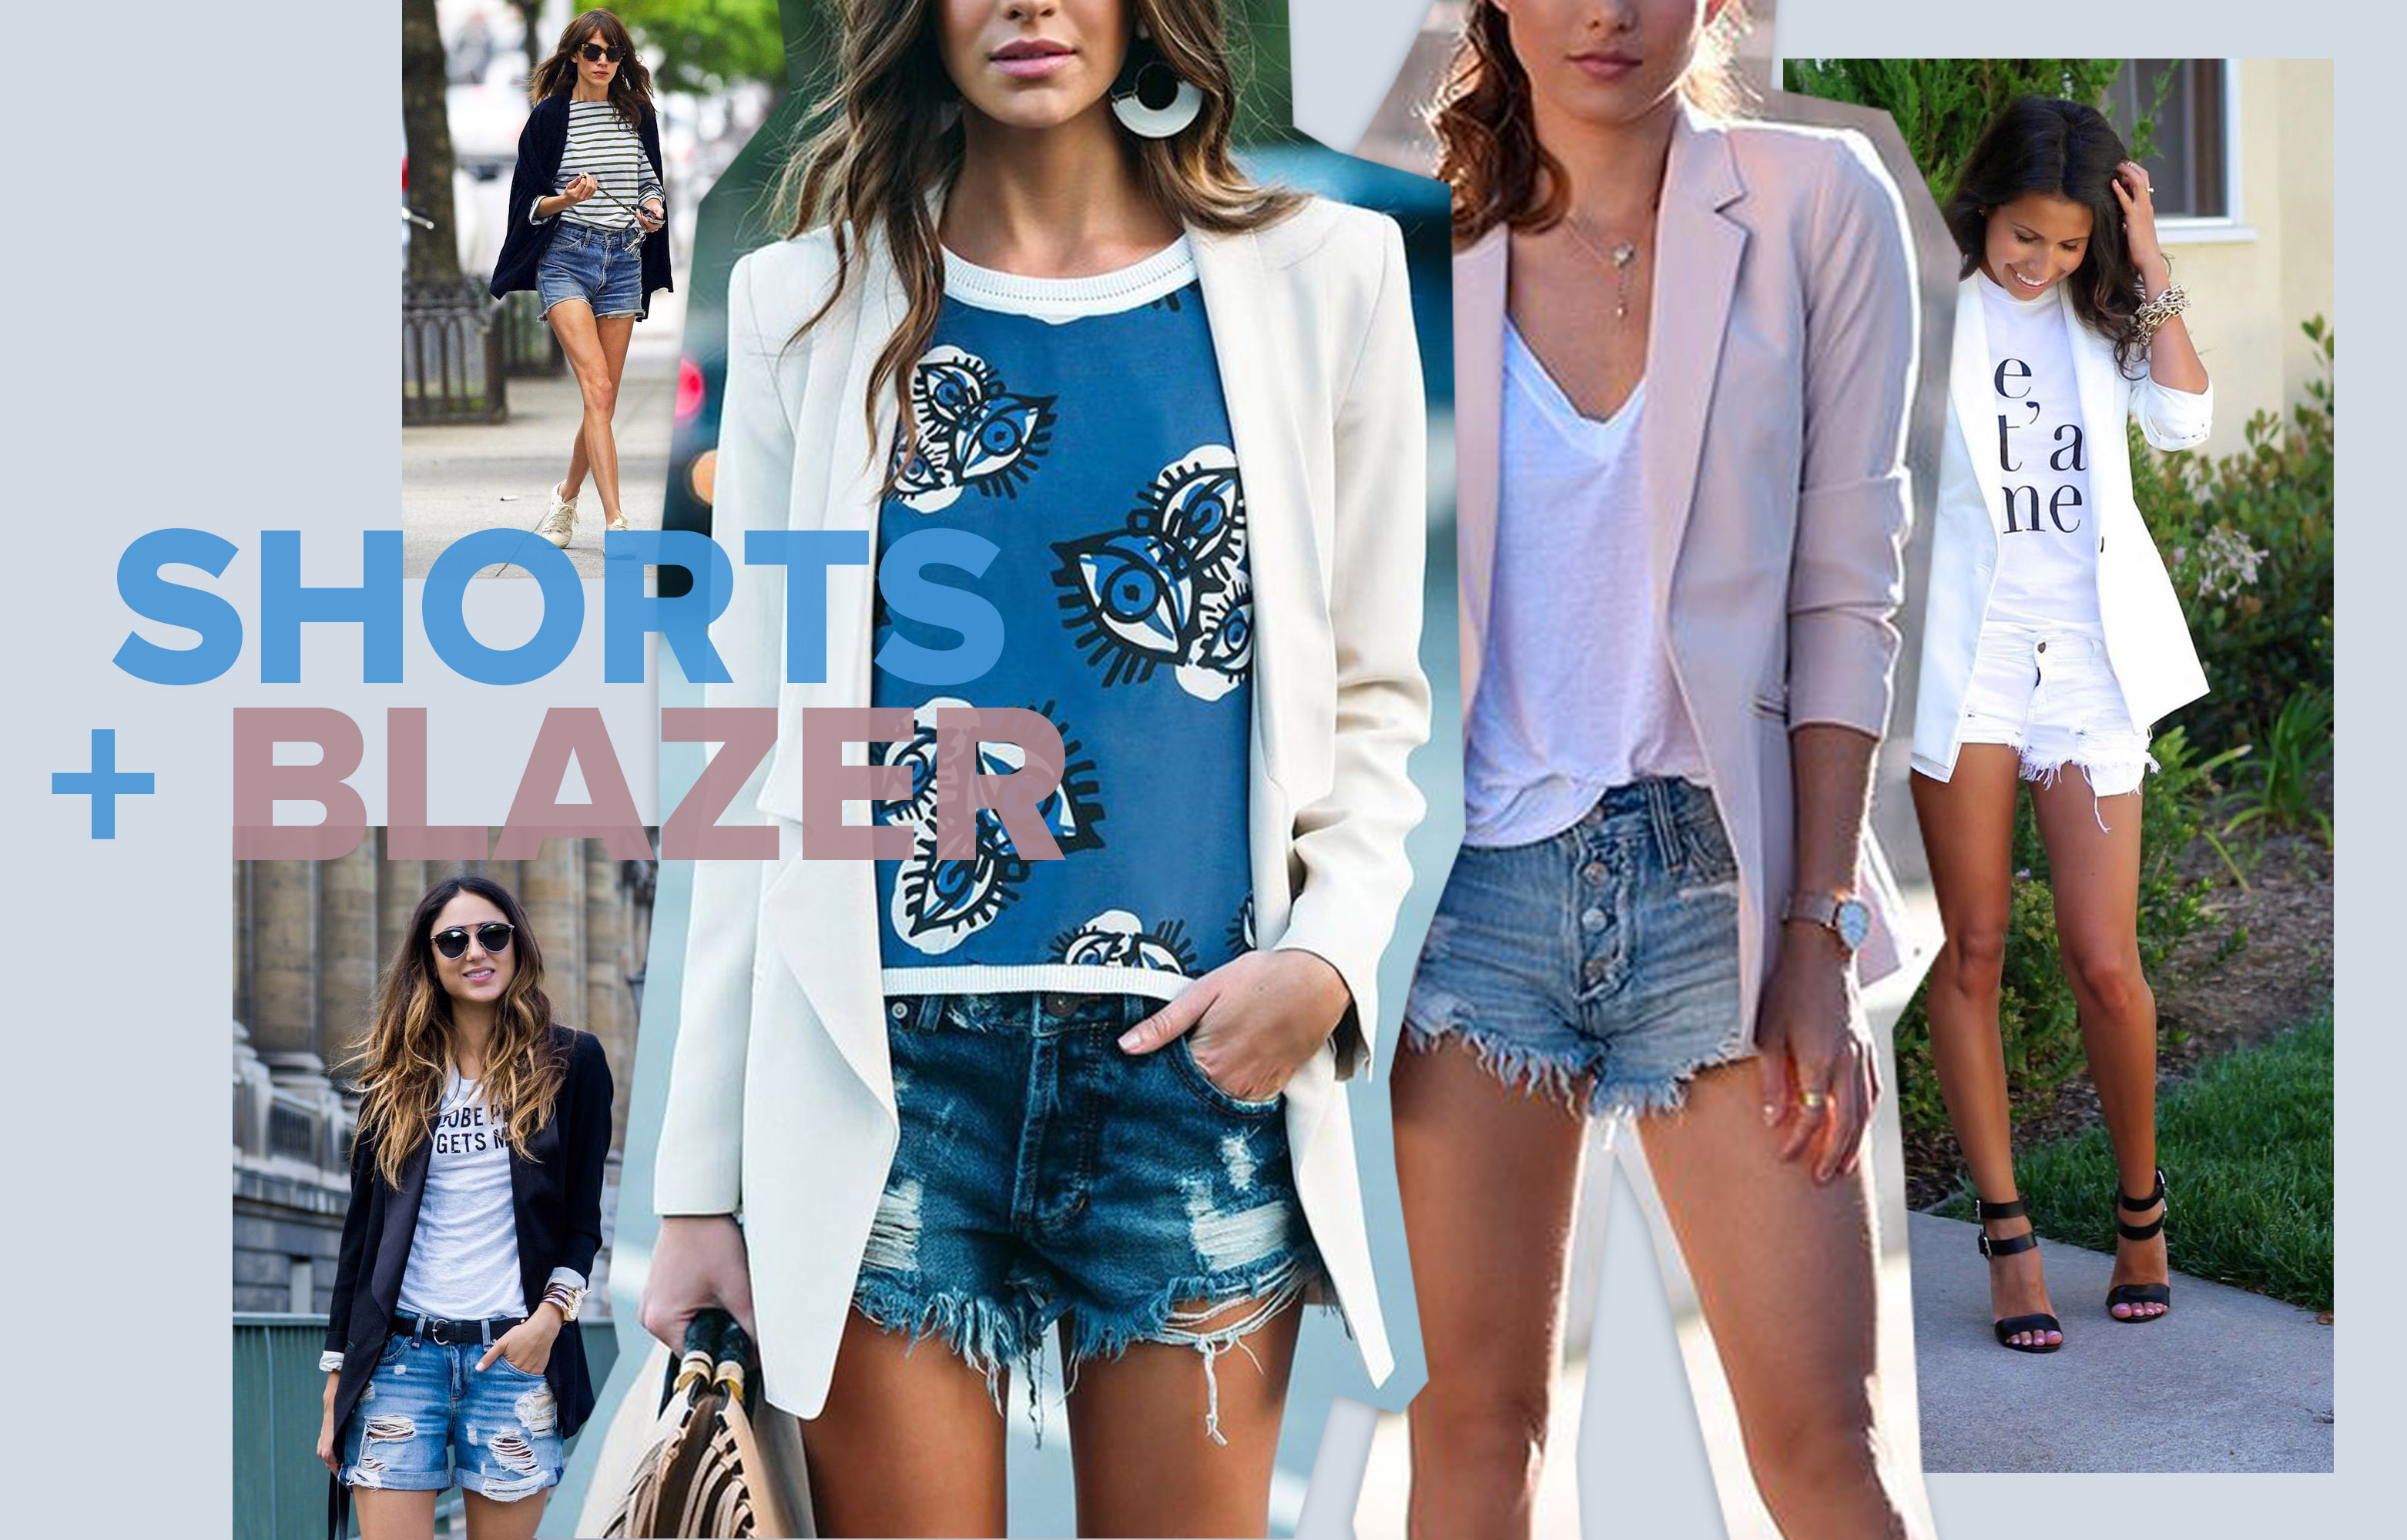 154.25_shop_all_bras_blog_quinzena_2_nov17_shorts_blazer